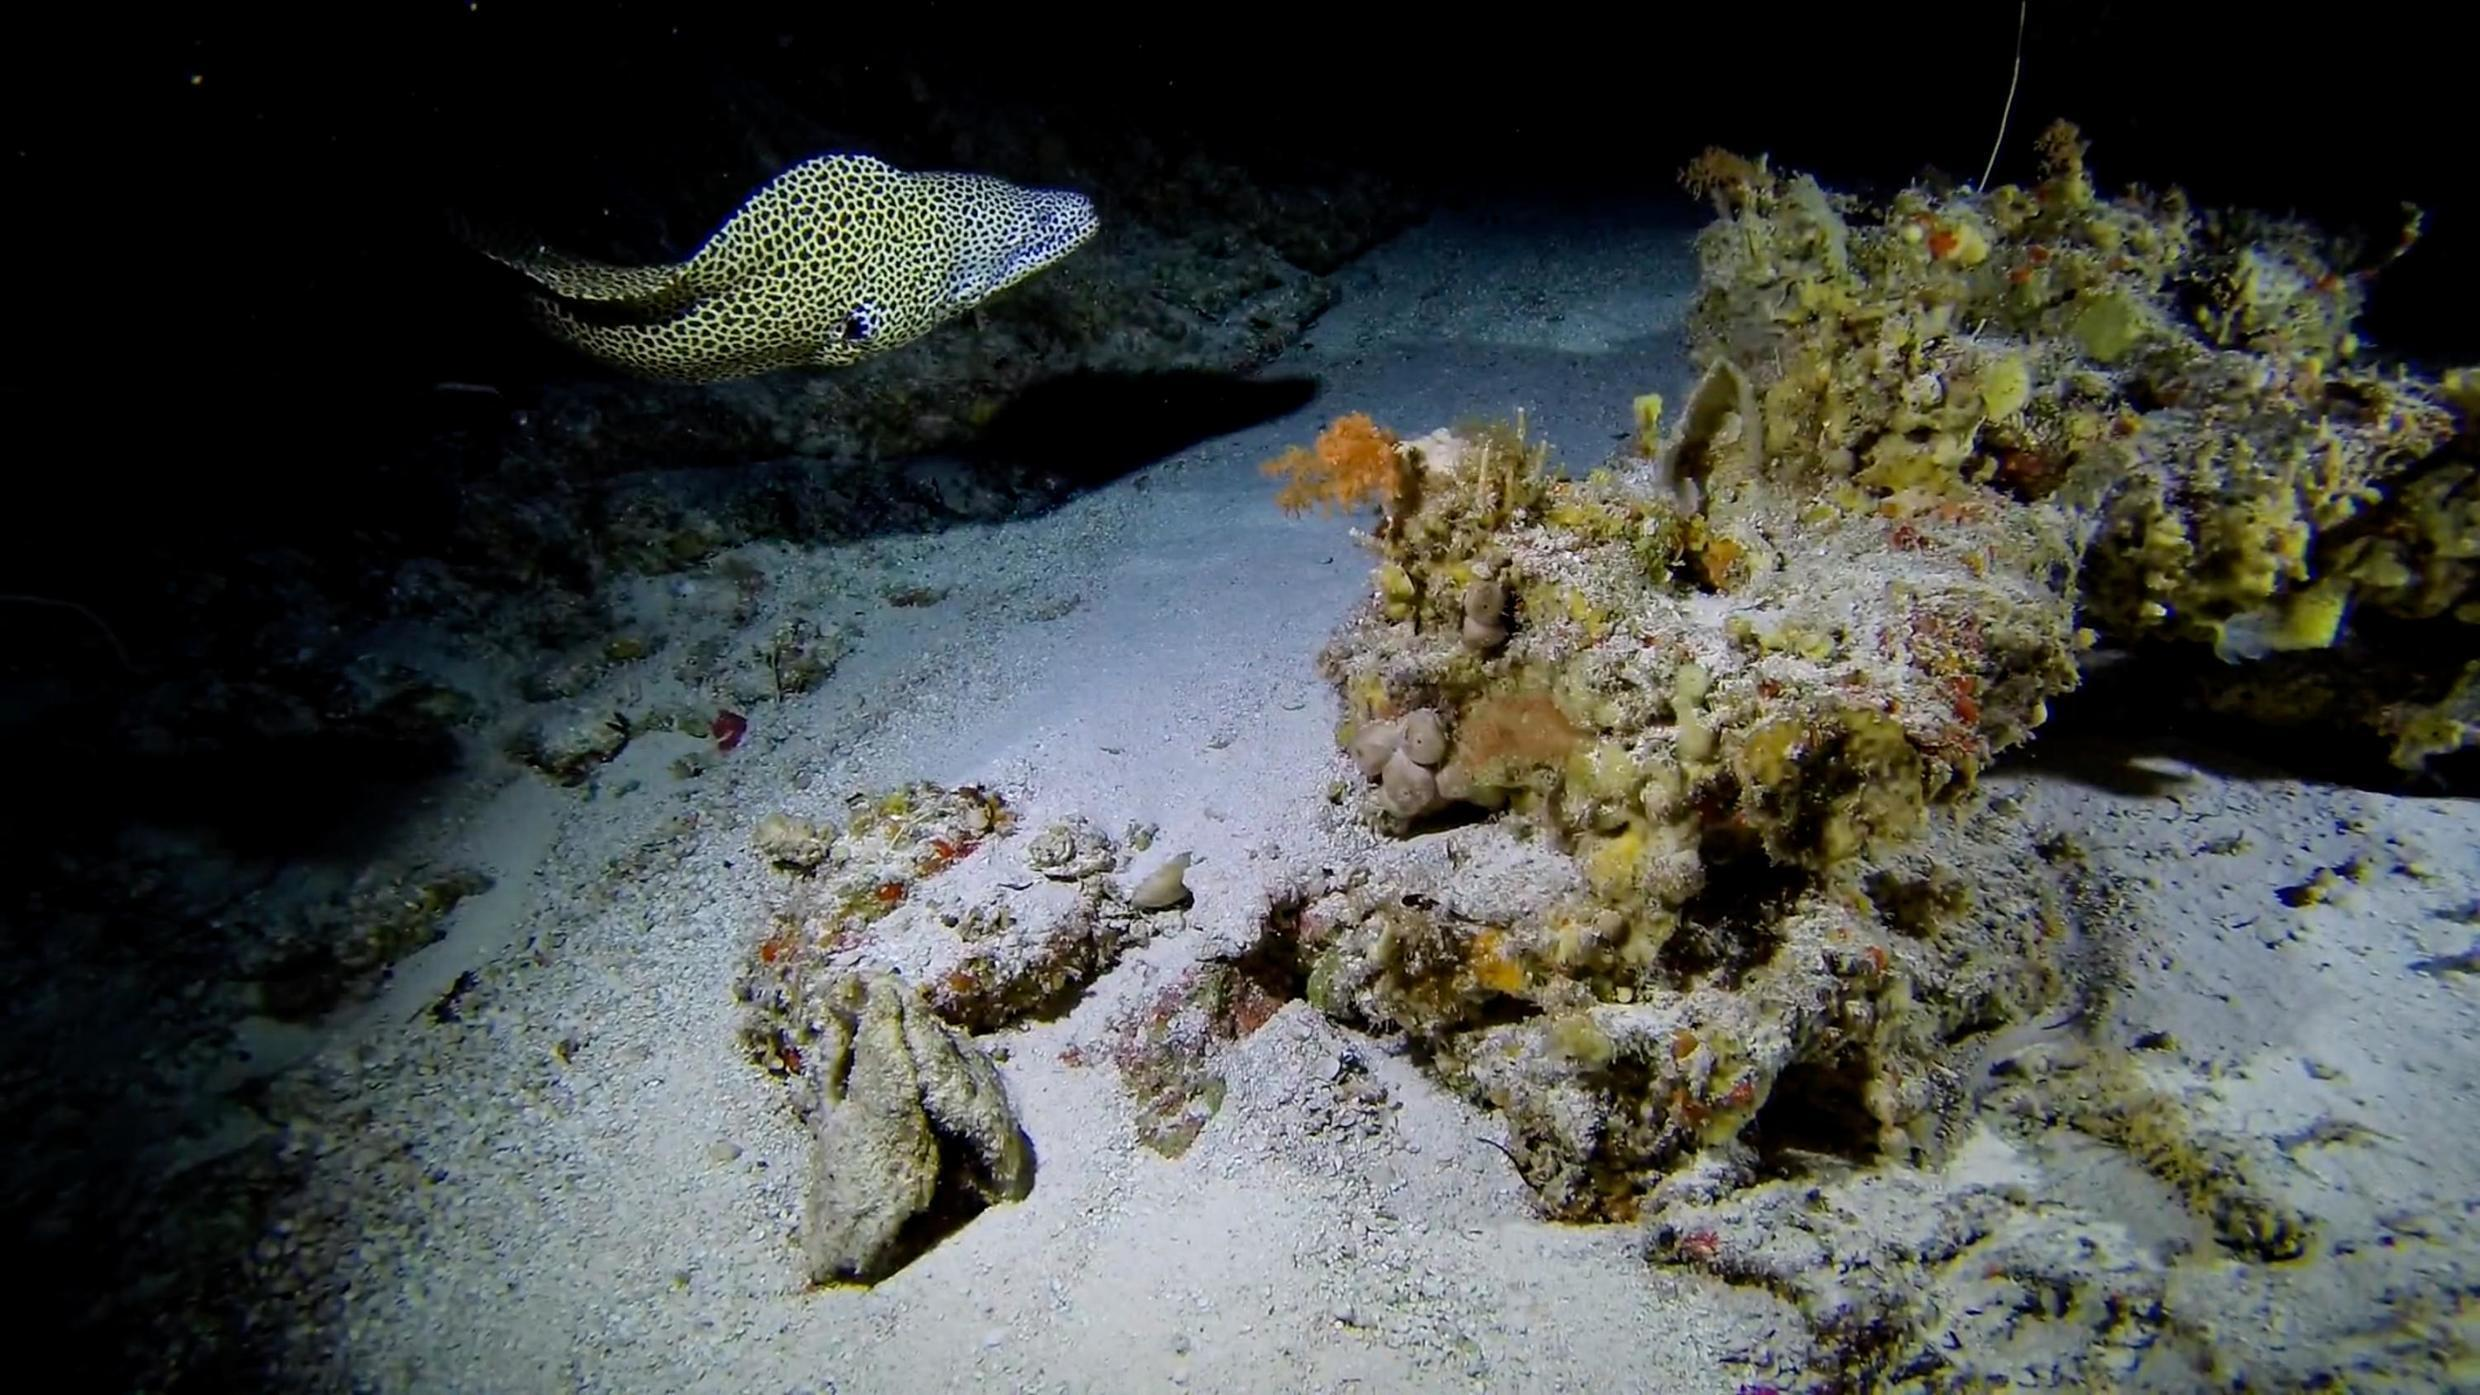 The Indo-Pacific predatory fish, Honeycomb Moray Eel, lit up by the submersible at Alphonse island.